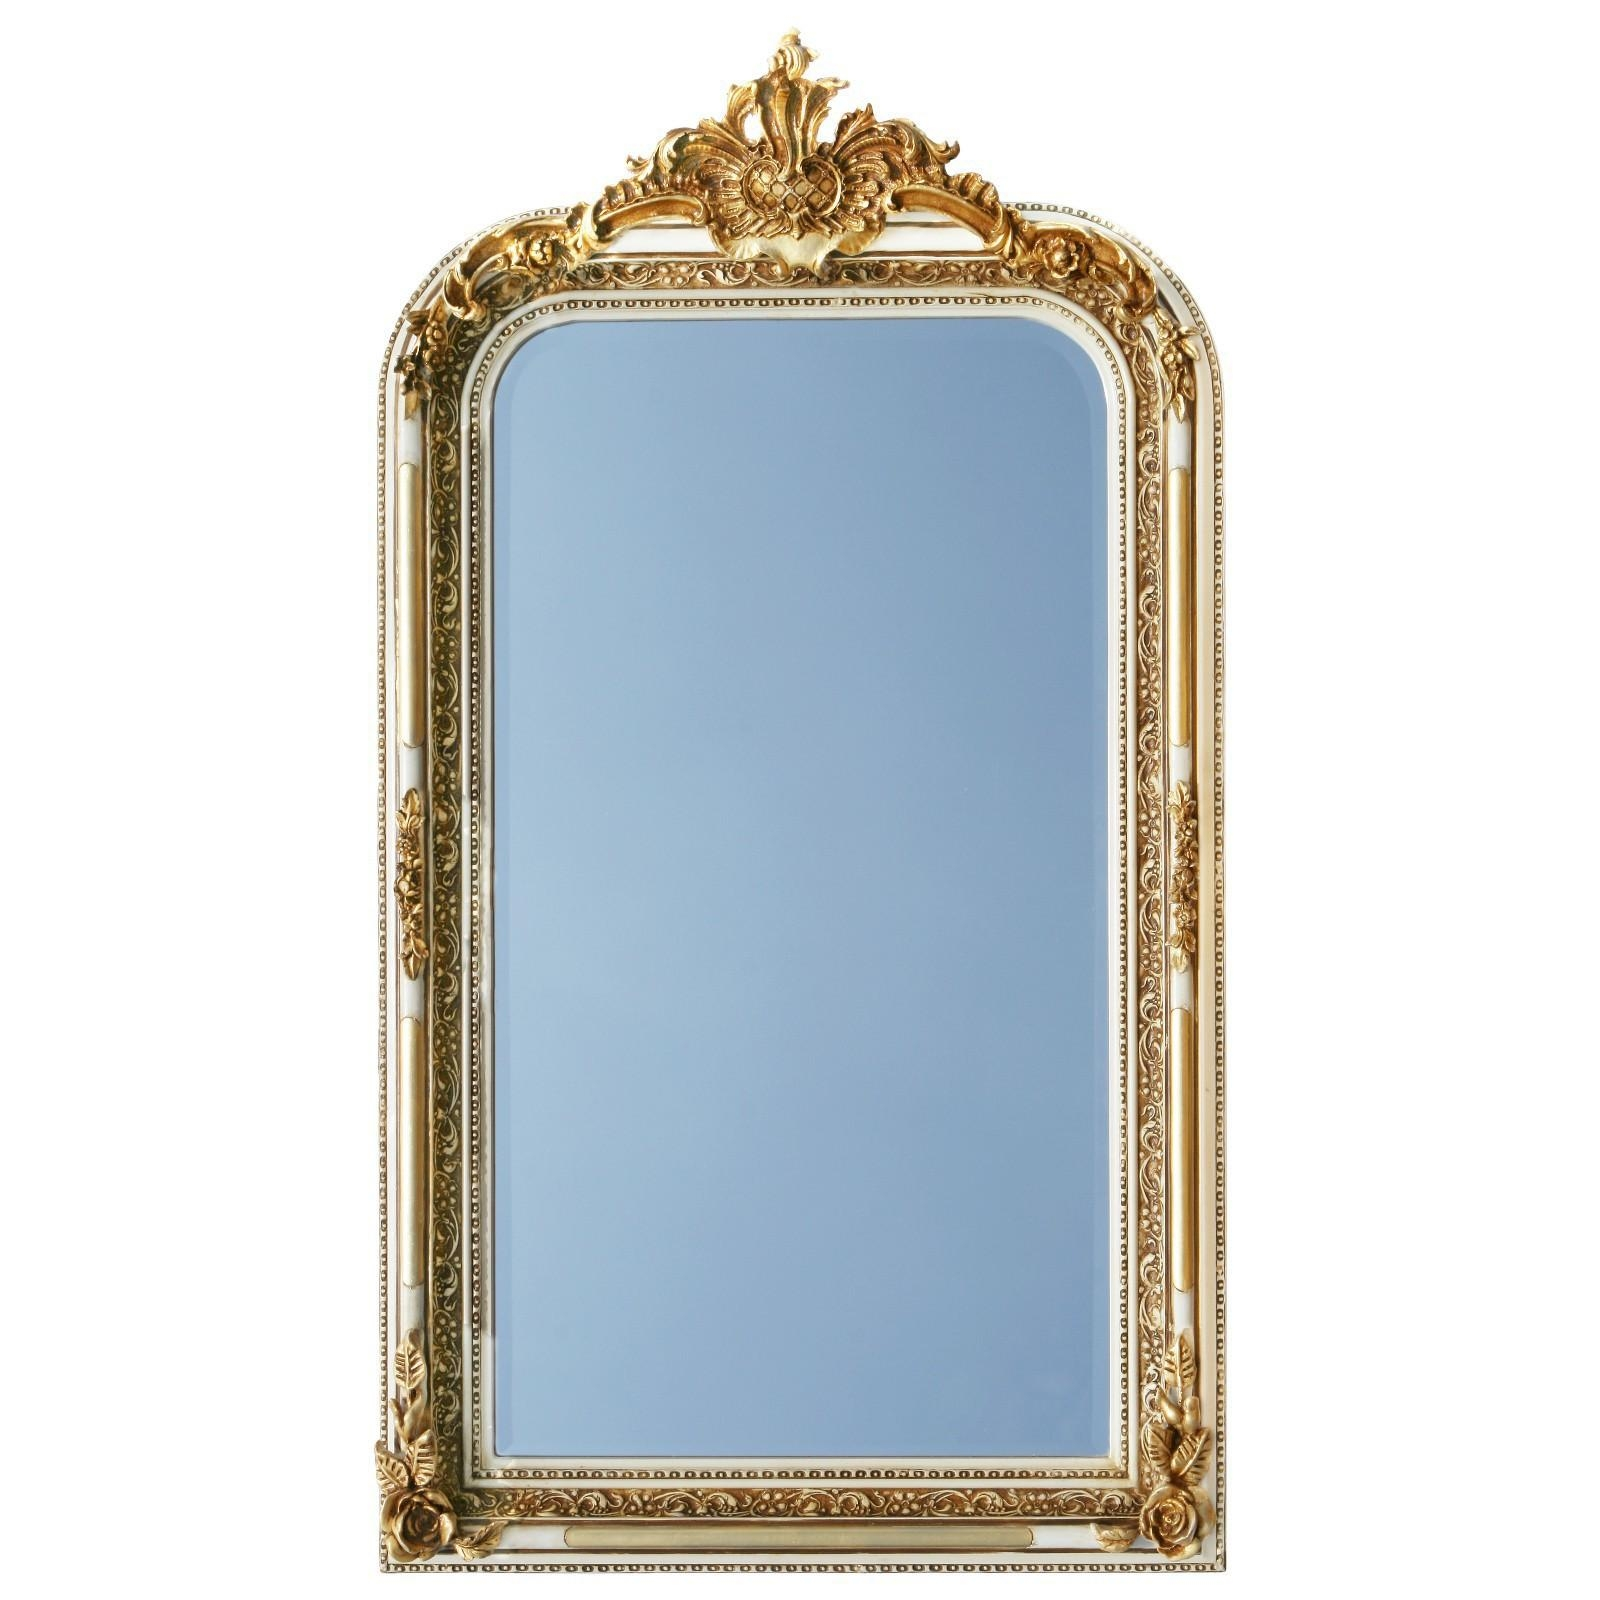 Pomp Mirror Baroque Style In Gold And White 2 Color Frame Mirror Intended For Gold Baroque Mirror (Image 19 of 20)